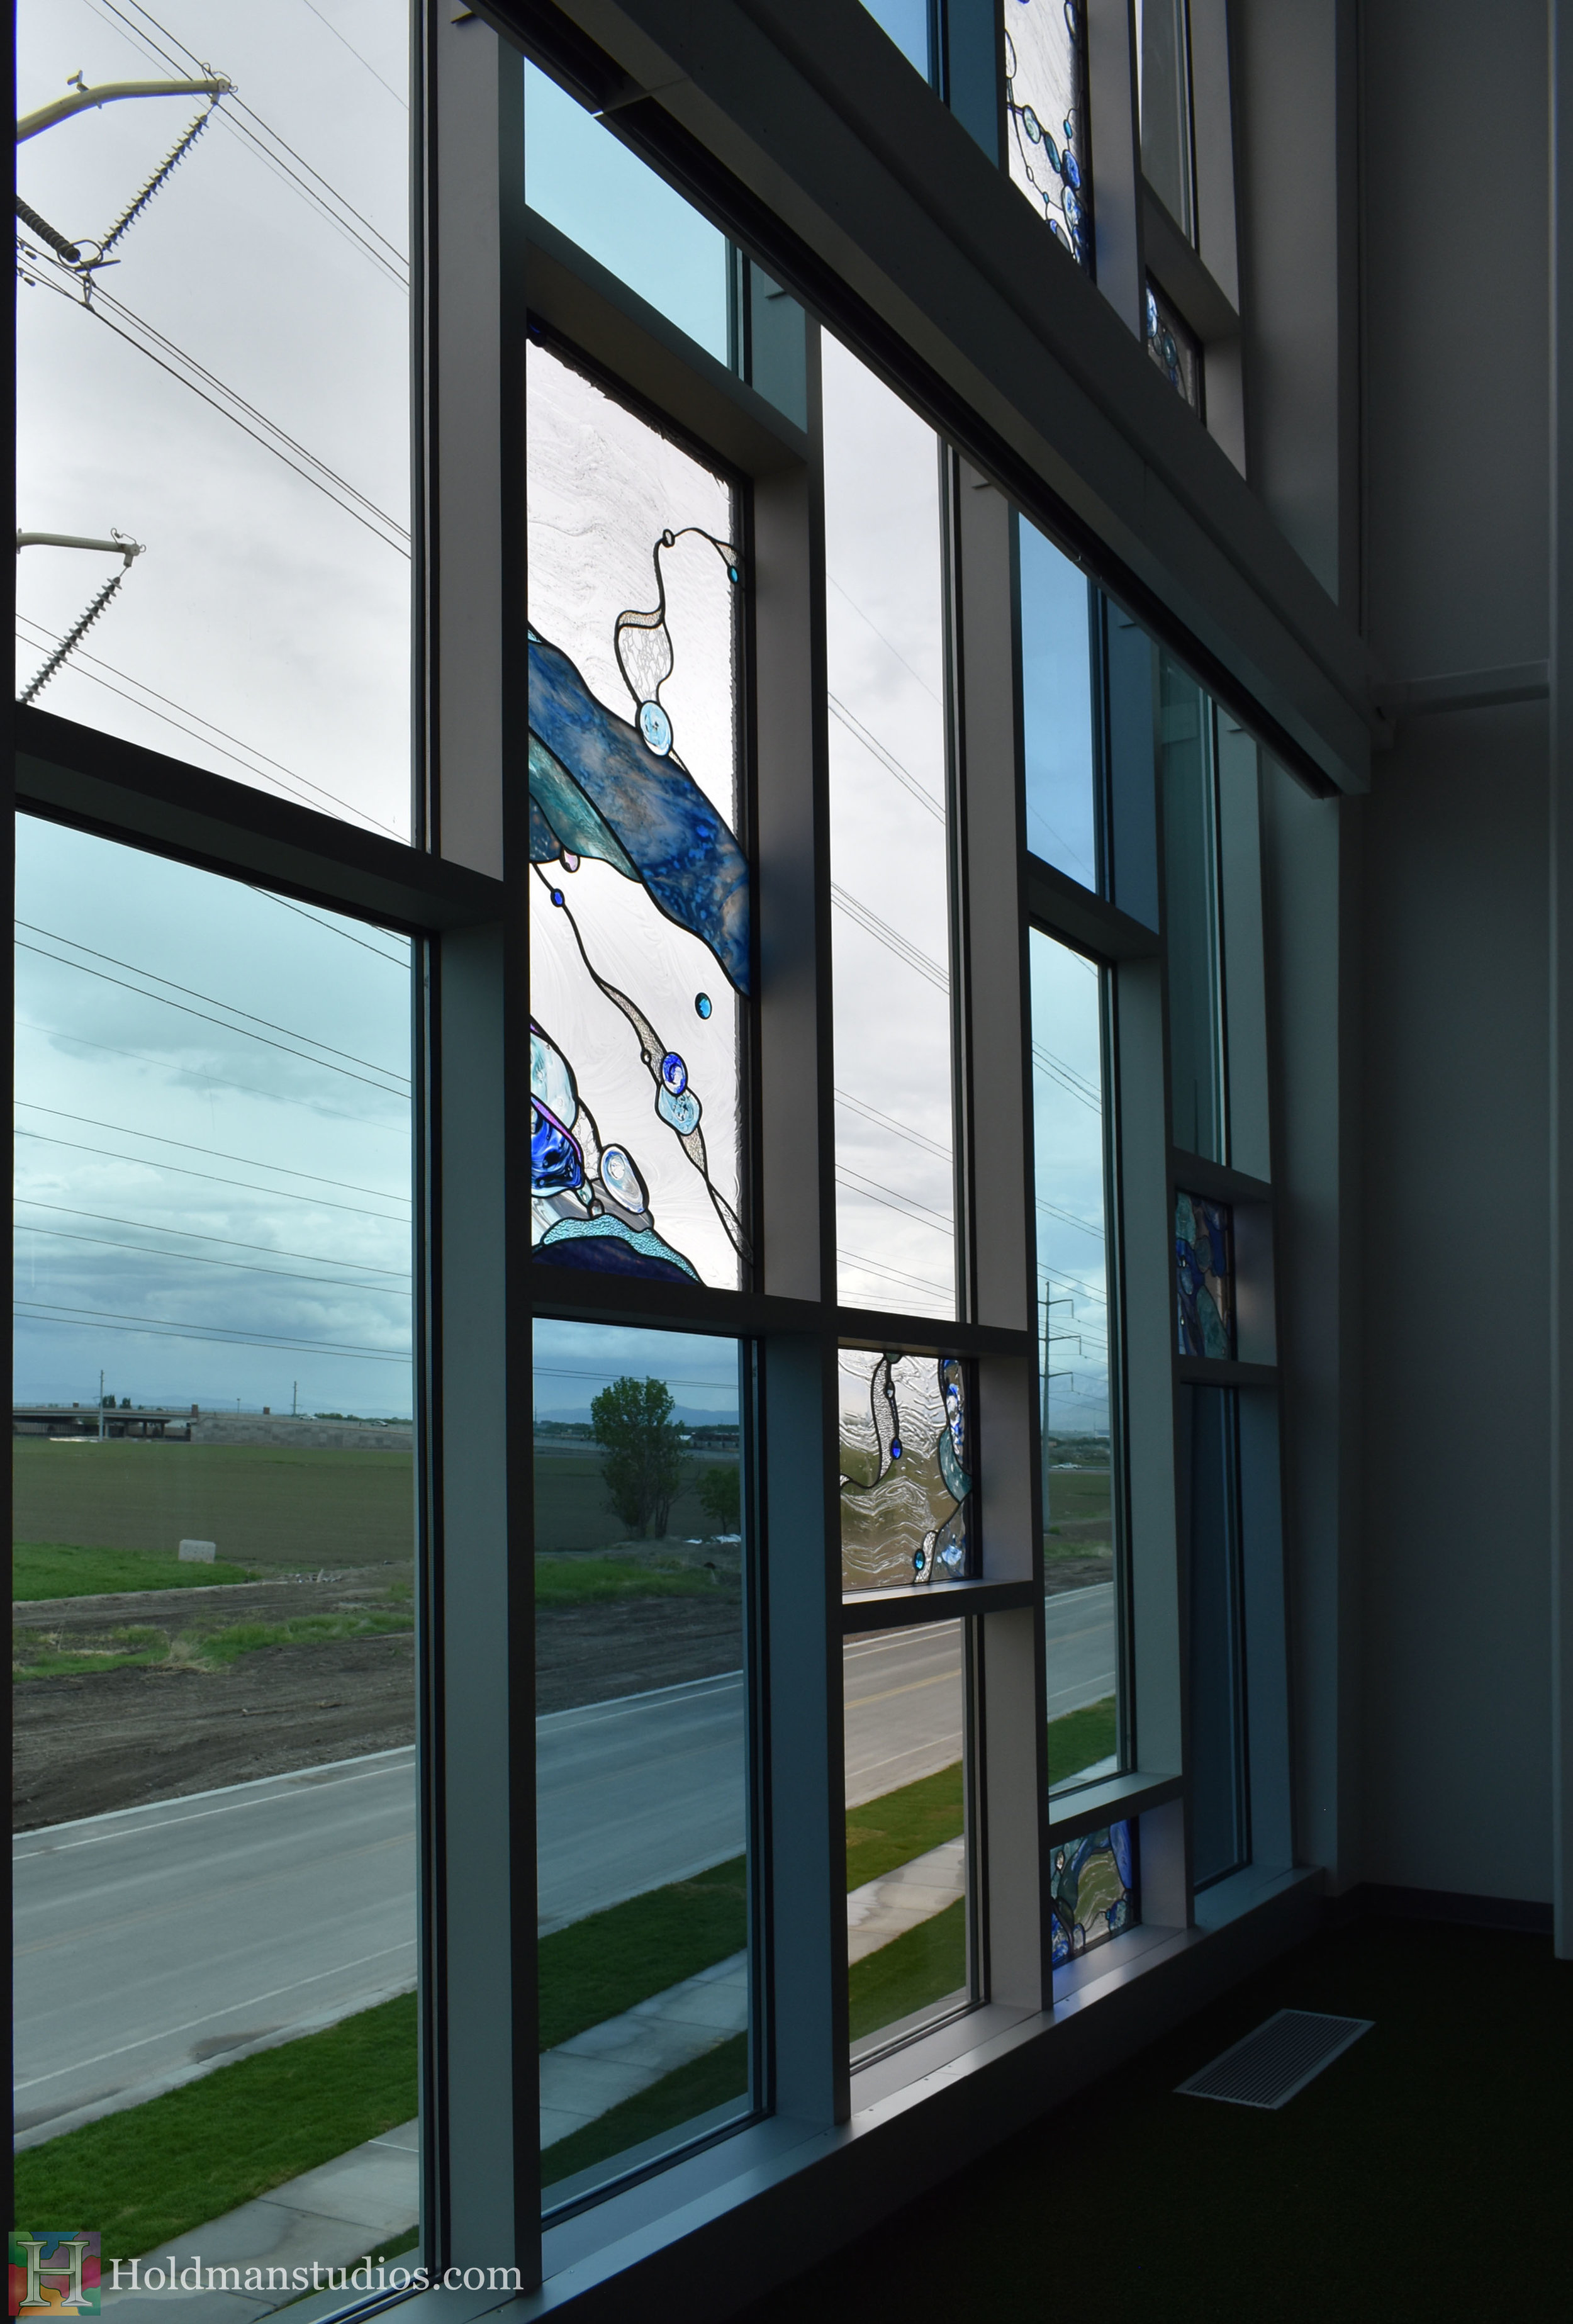 holdman-studios-hand-blown-stained-glass-window-springville-clyde-rec-center-water-bubbles.jpg